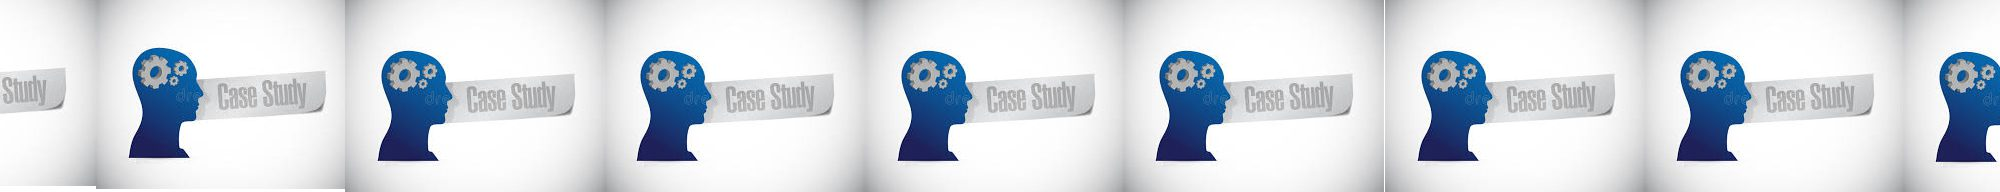 ProSolution Management Services Case Studies